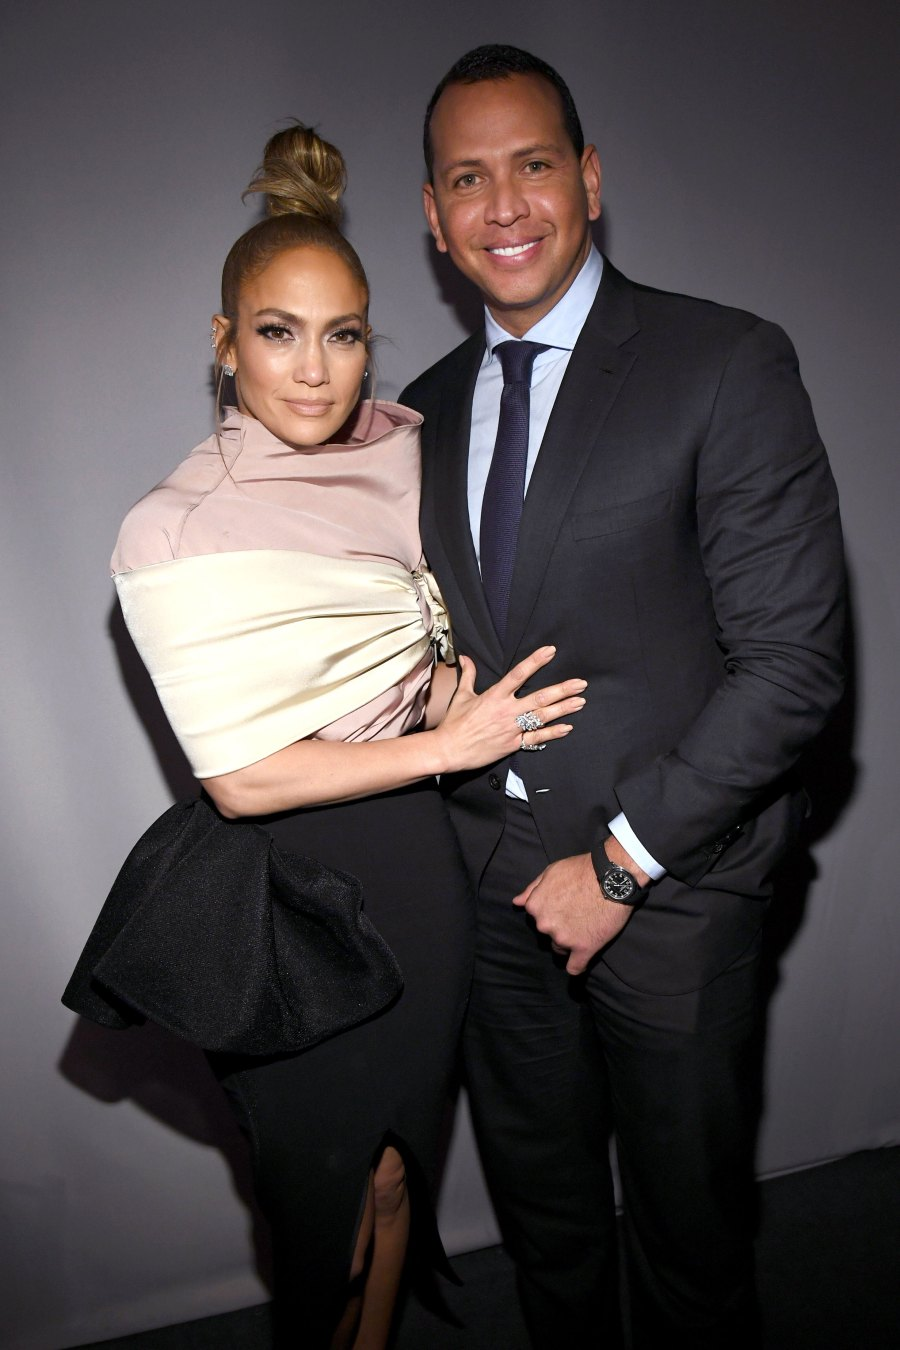 Jennifer Lopez's Dating History A Timeline of Her Famous Relationships, Exes and Flings